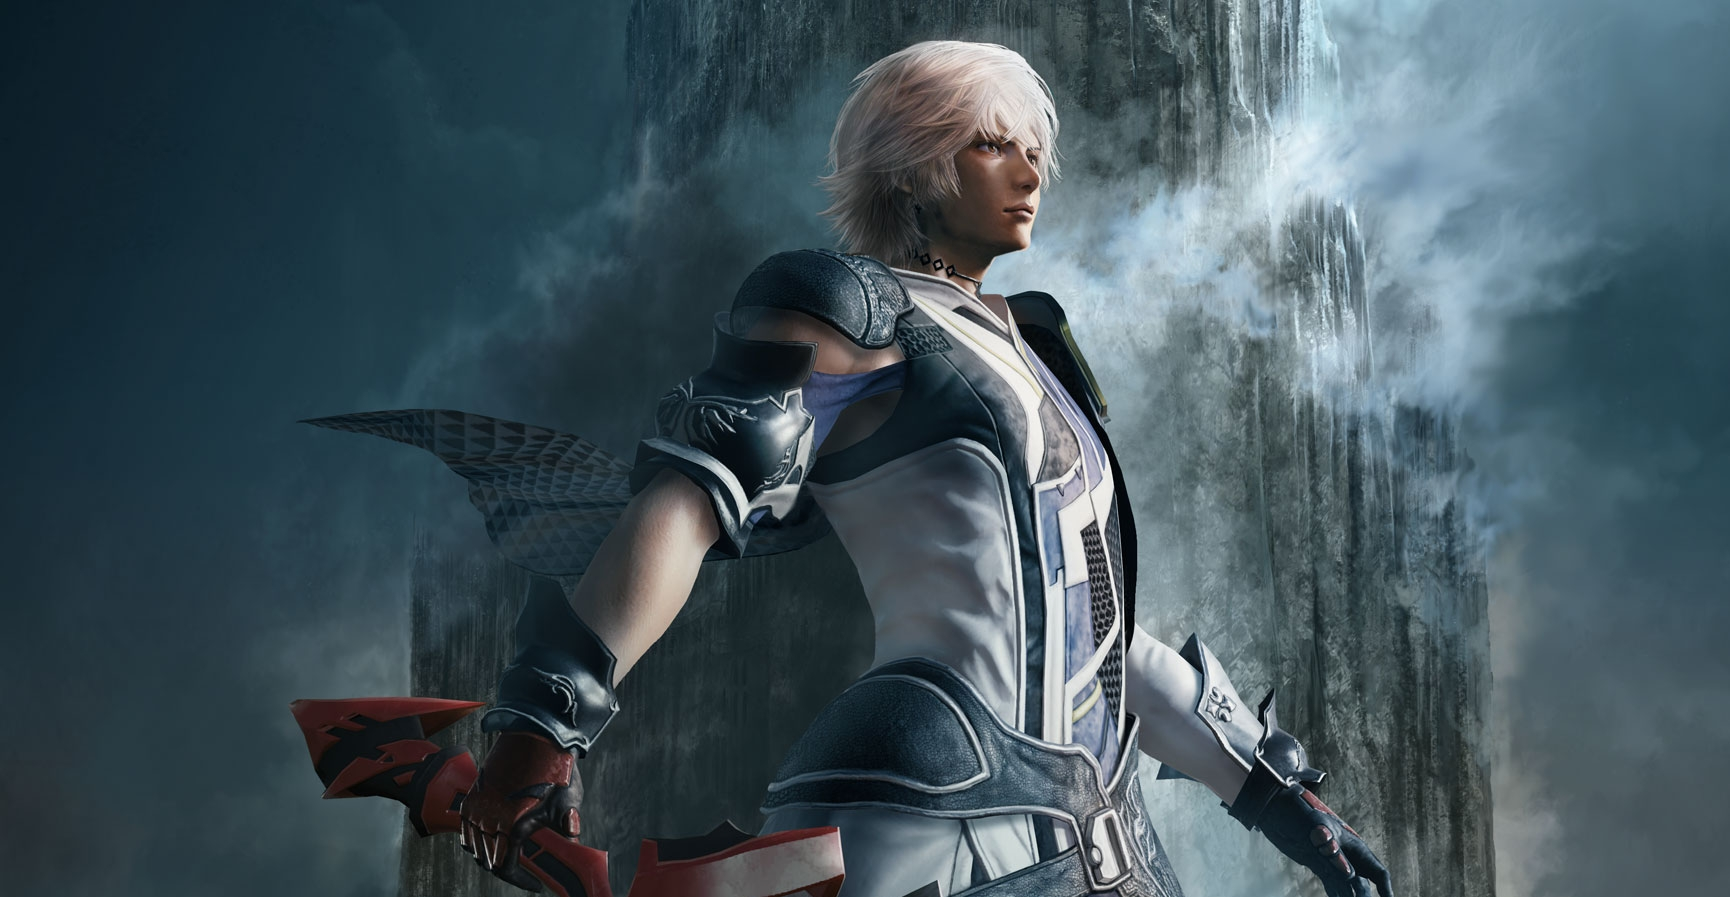 Mobius Final Fantasy Announces Its Shutting Down Servers Forever This June